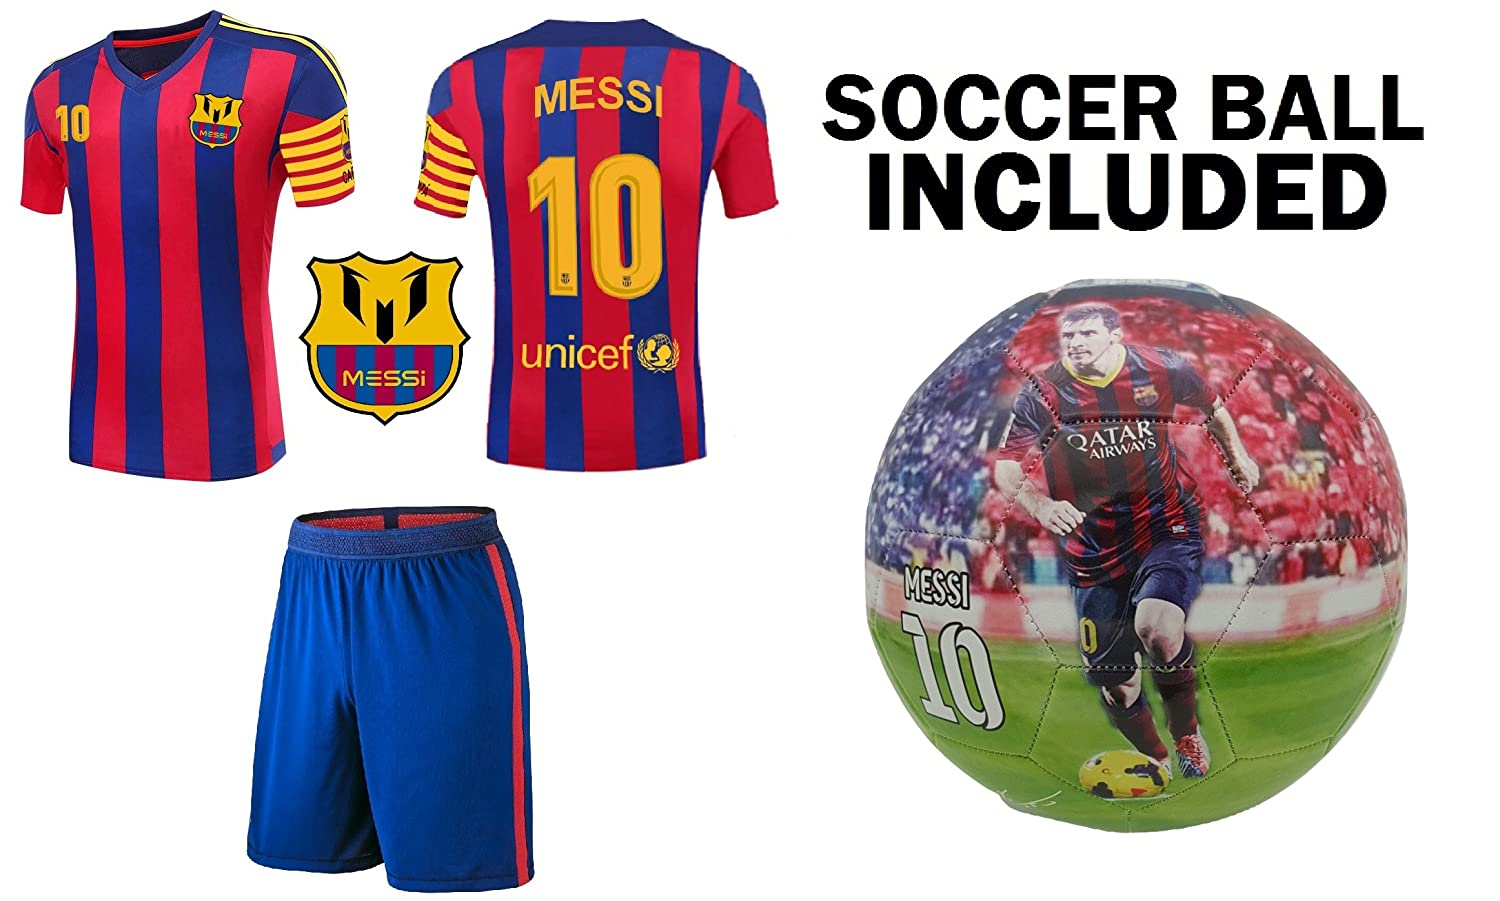 a9caccaa9 Lionel Messi  10 Soccer Jersey Youth - PREMIUM Messi Jersey Gift Set for  Kids - Leo Messi Jersey + Shorts + MESSI BALL Size 5 Football Futbol Gift for  Boys ...